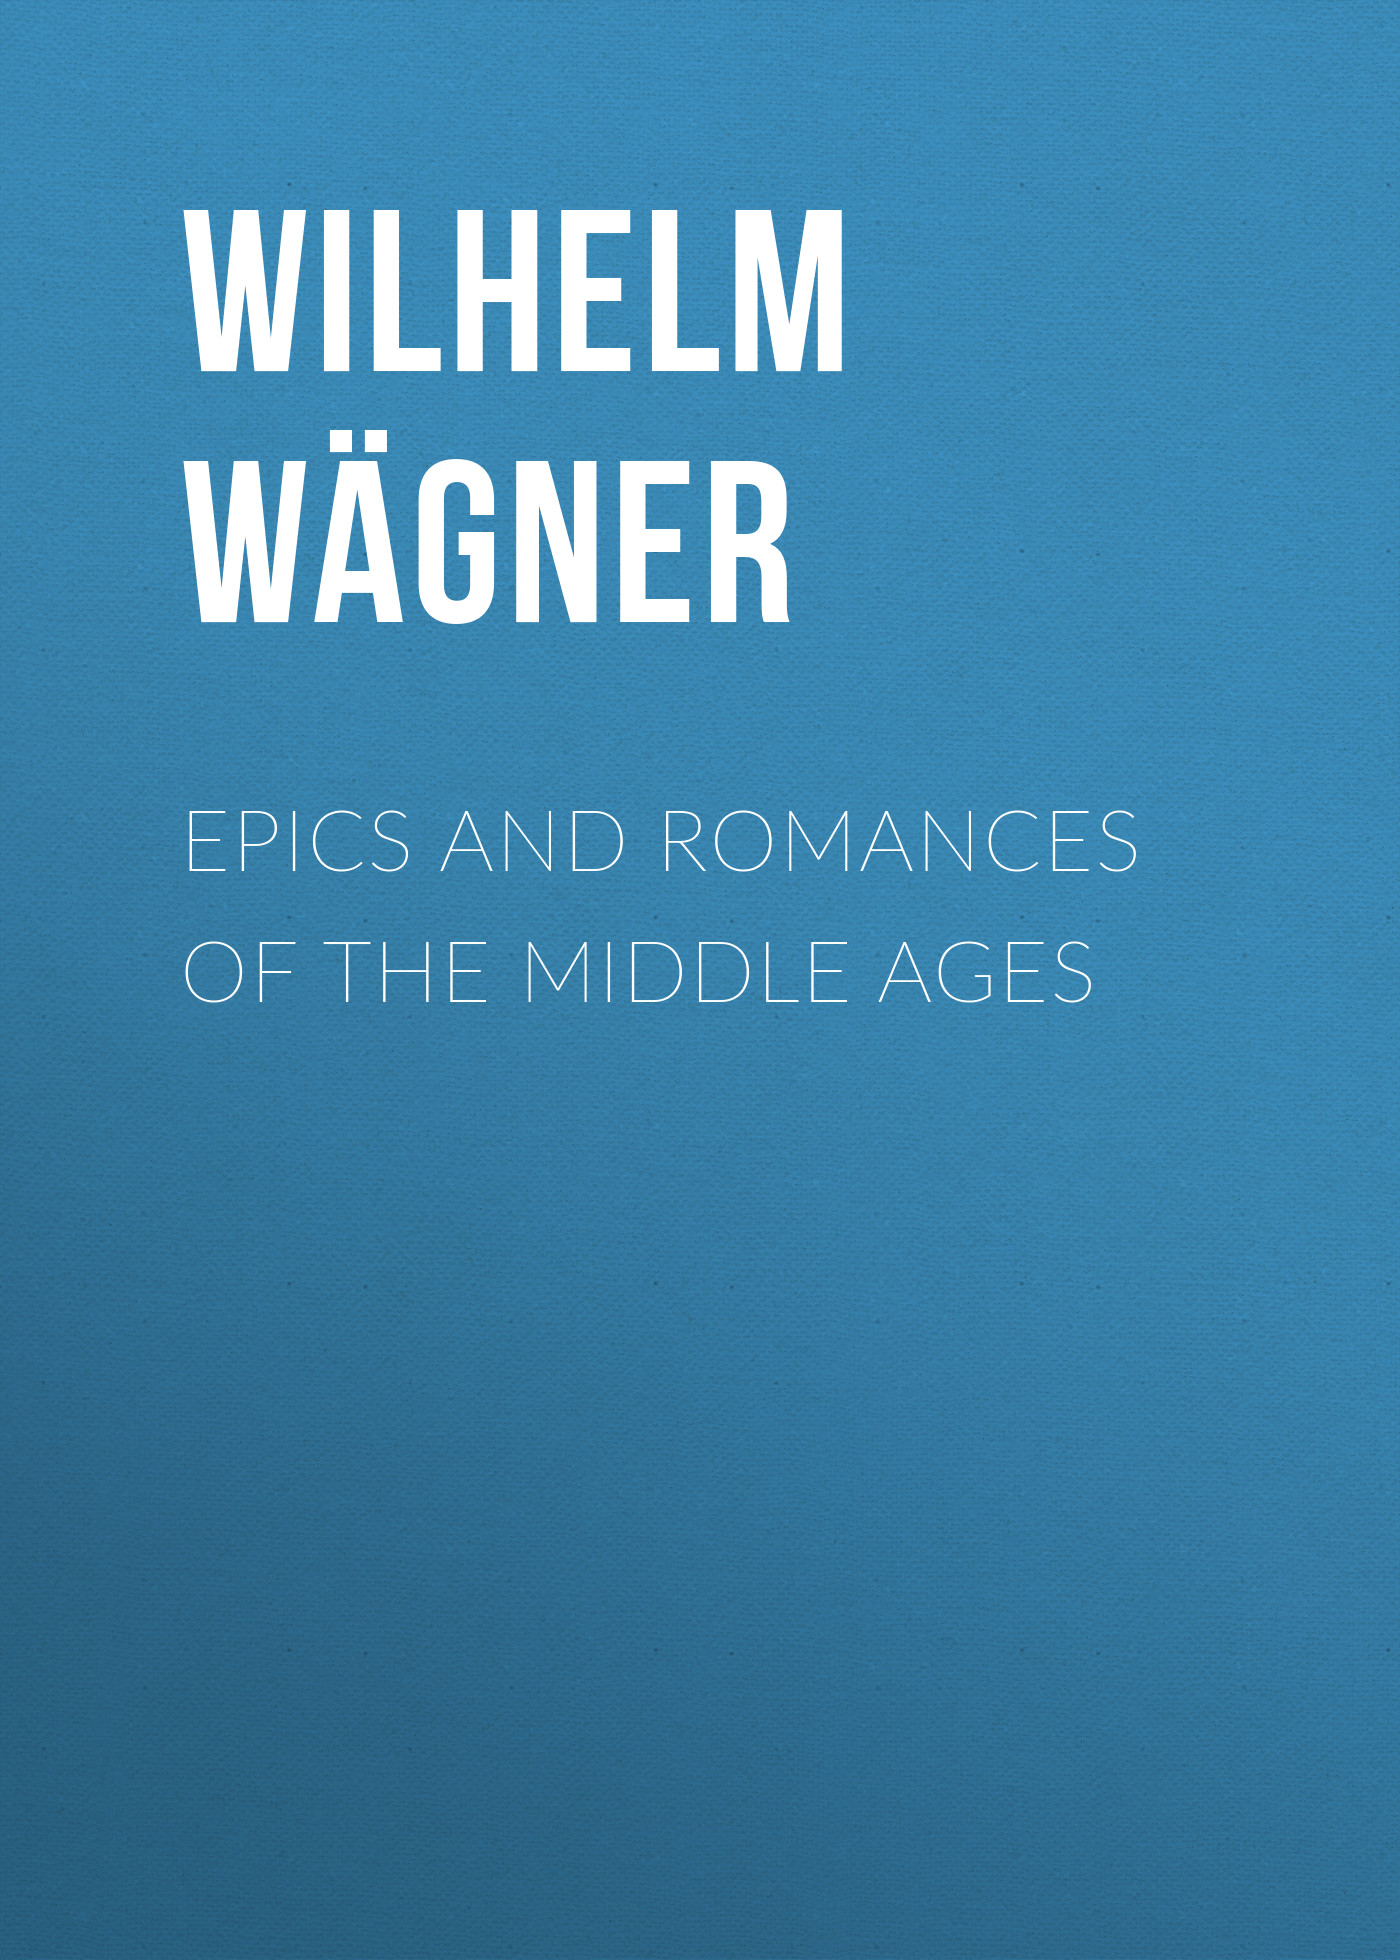 Wilhelm Wägner Epics and Romances of the Middle Ages wilhelm wägner epics and romances of the middle ages